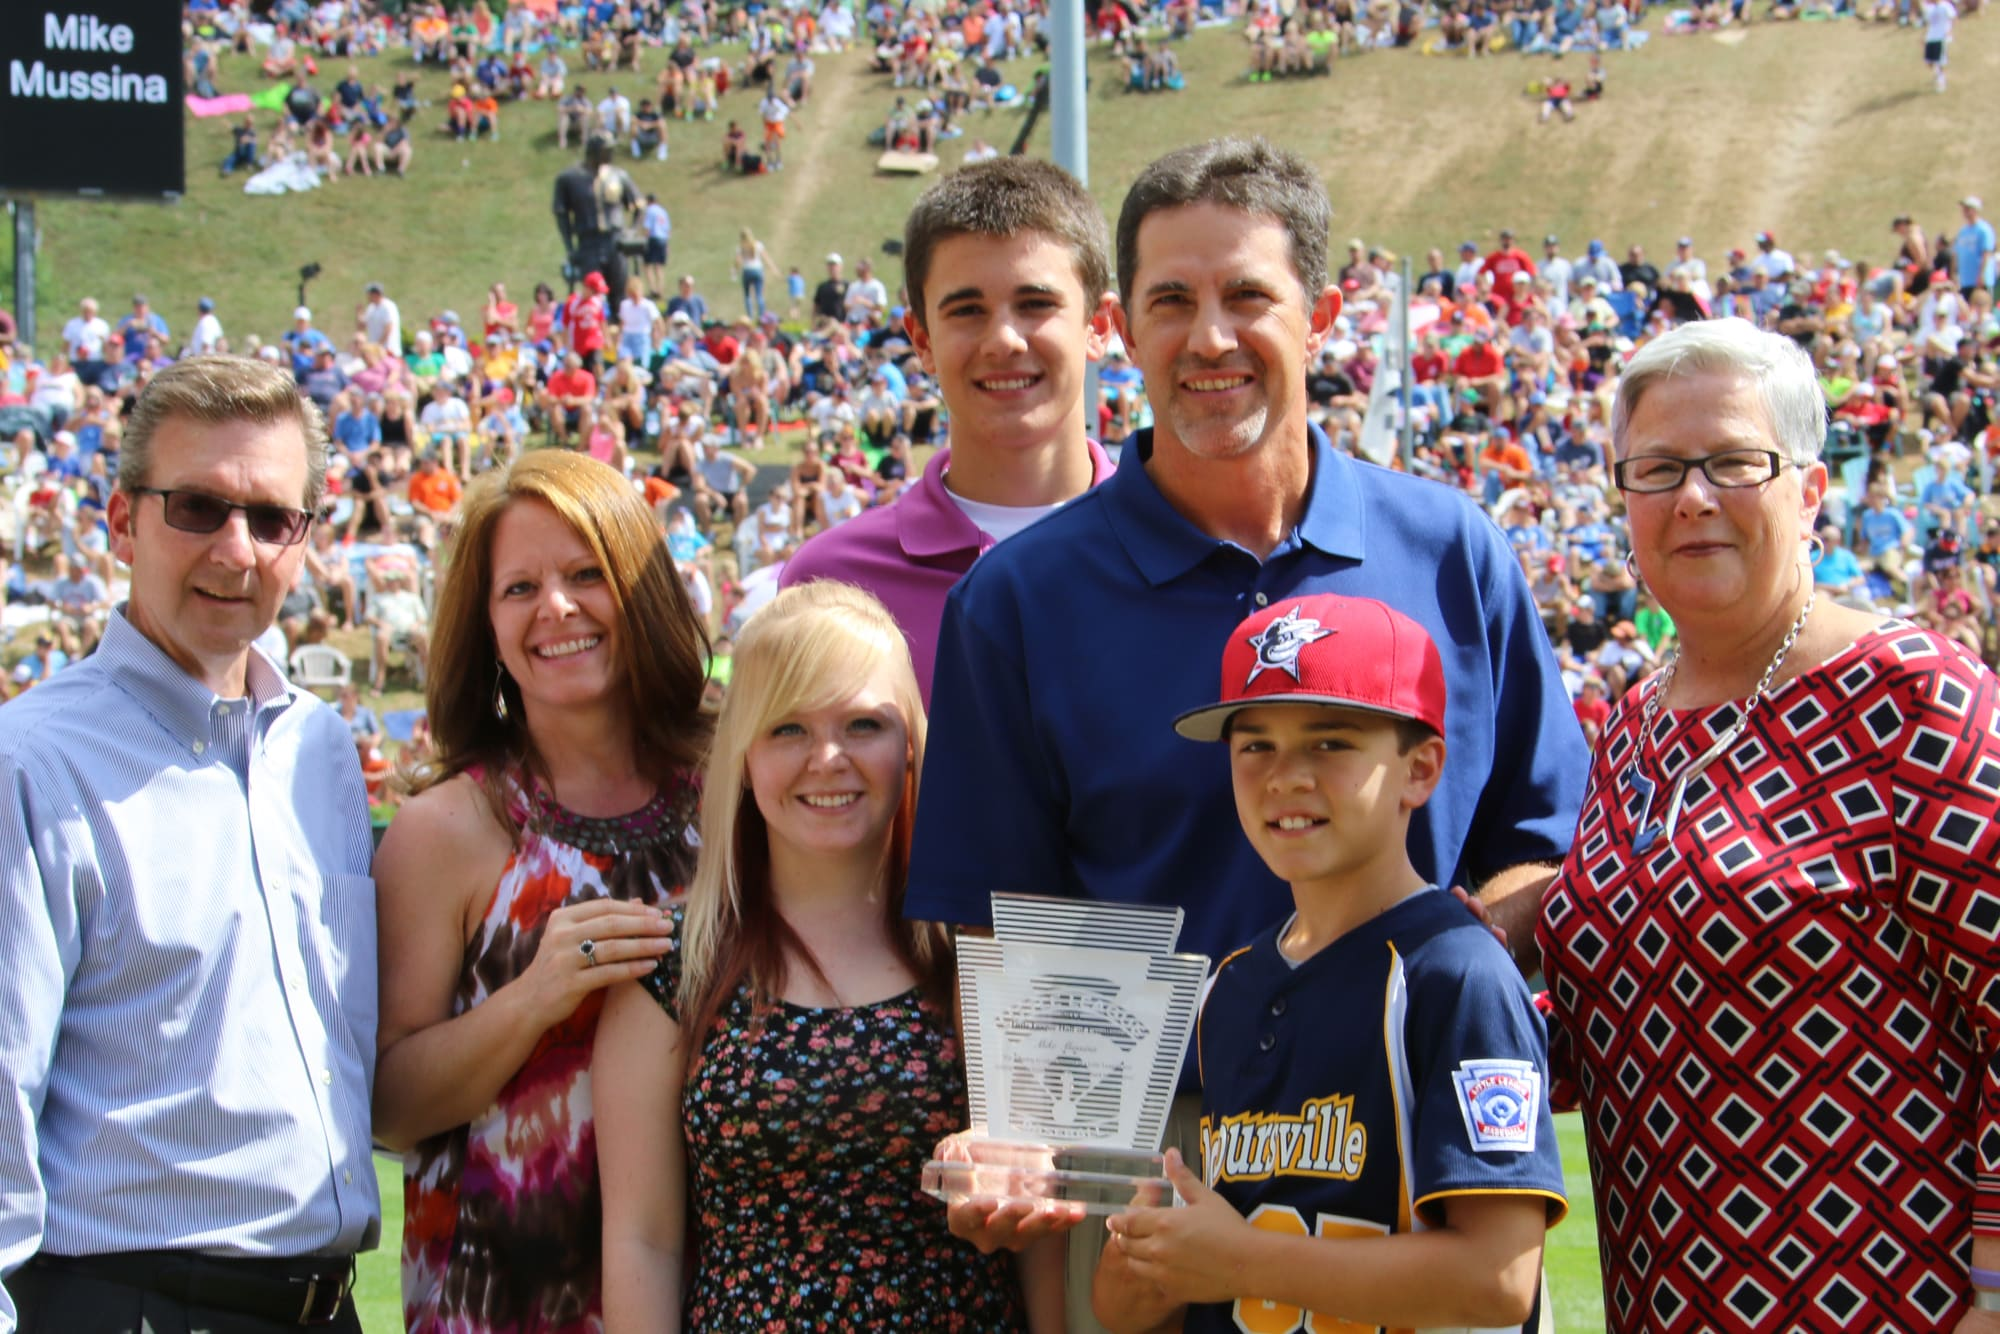 Mike Mussina receives the 2014 Little League® Hall of Excellence award.